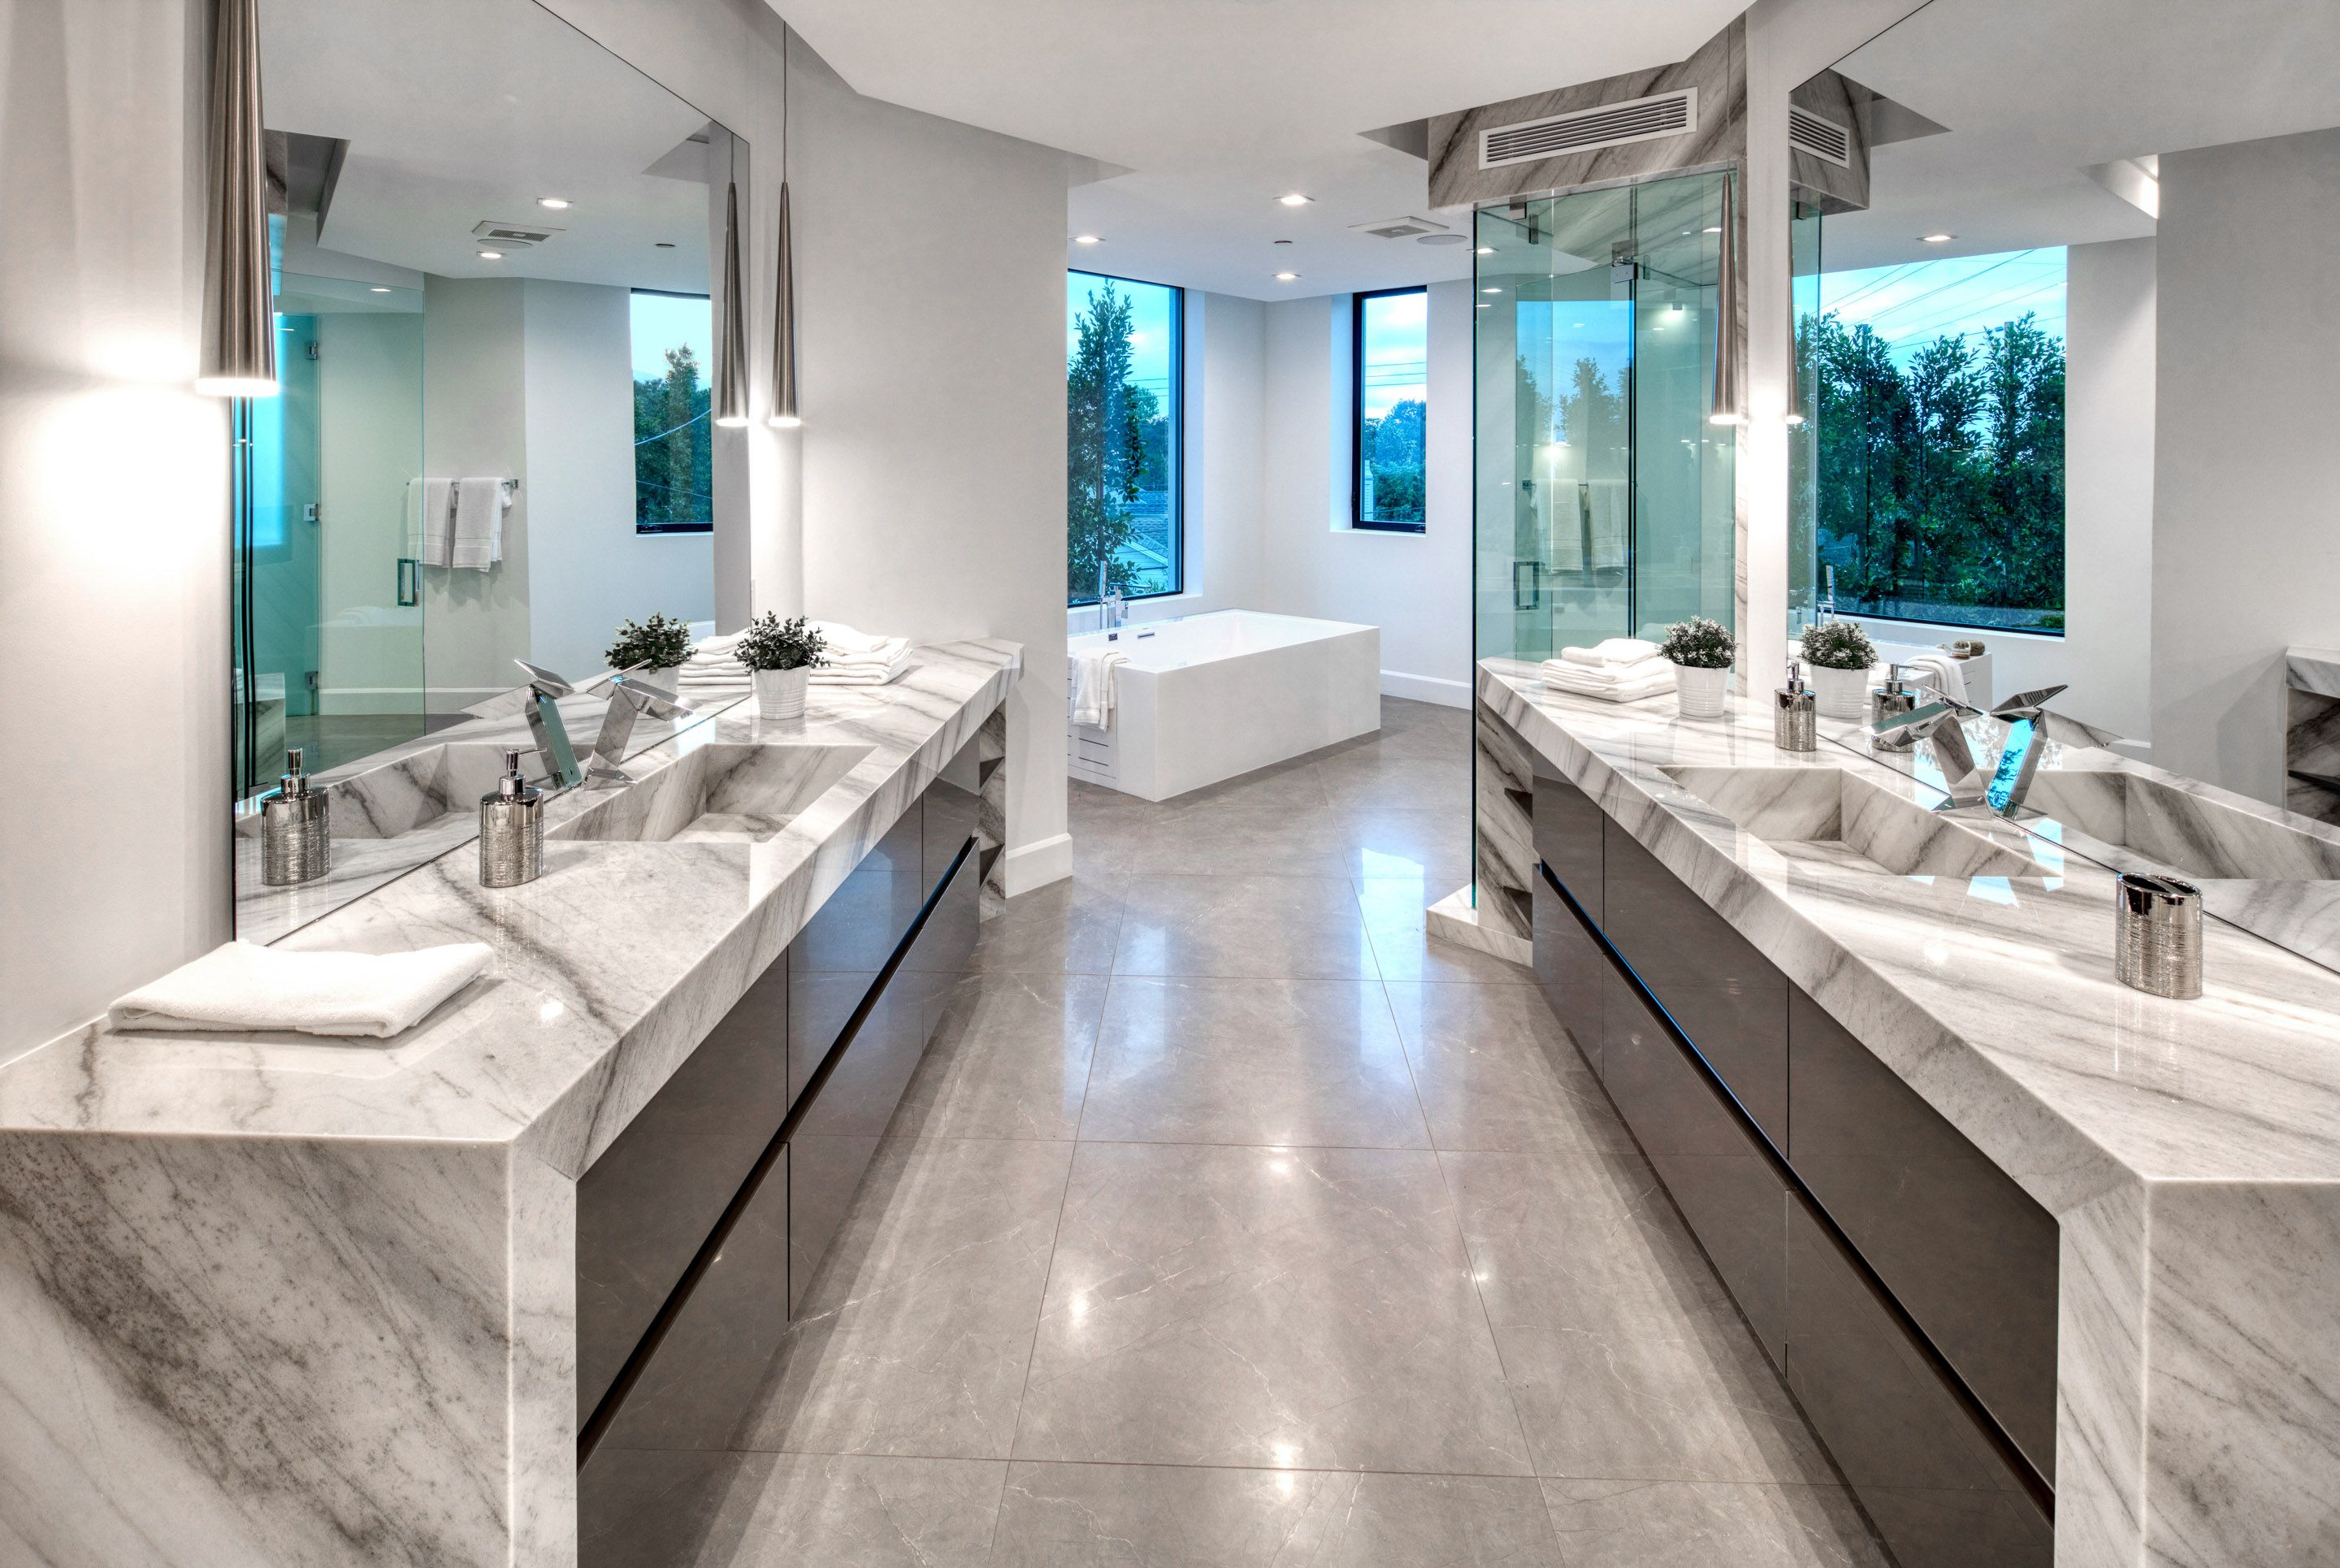 Luxury Master Bath Suite In Modern Home With Granite Marble